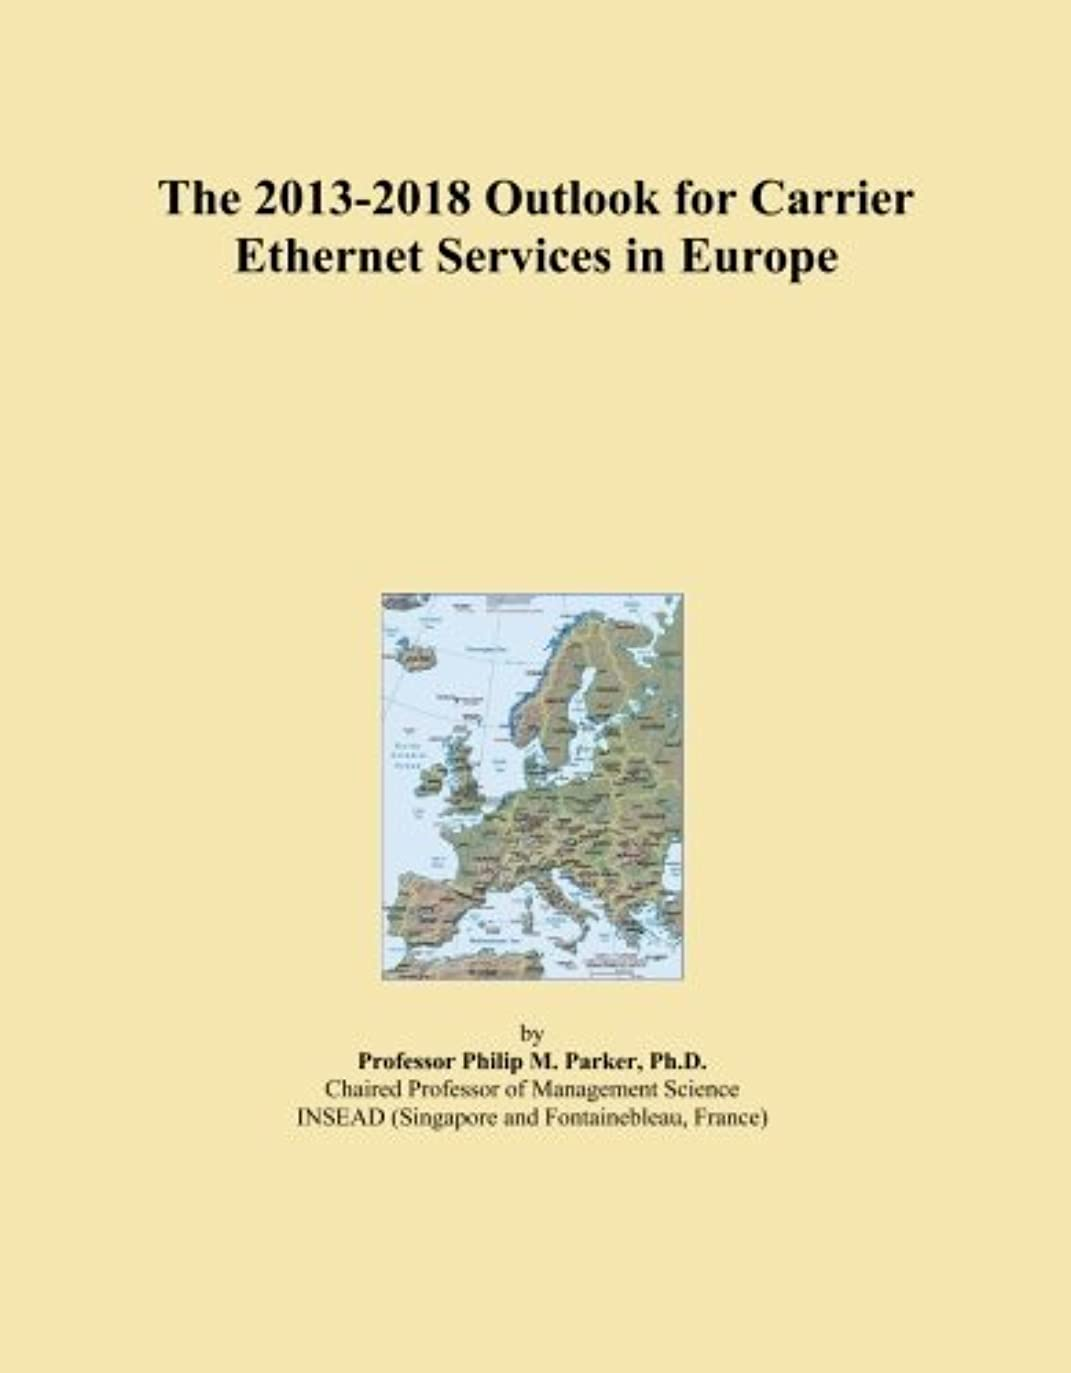 The 2013-2018 Outlook for Carrier Ethernet Services in Europe